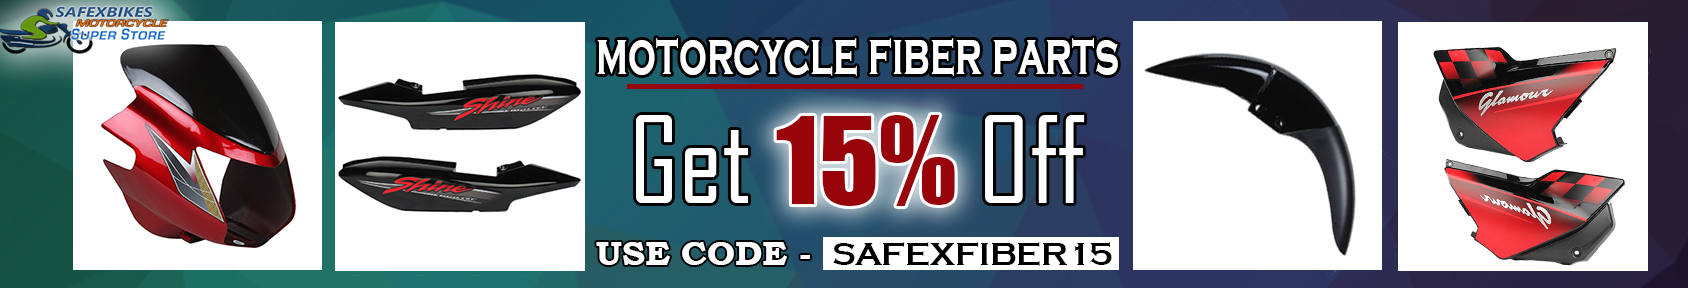 Special offers on Genuine Motorcycle Spare Parts And Accessories - Get 15% off on Plastic body parts